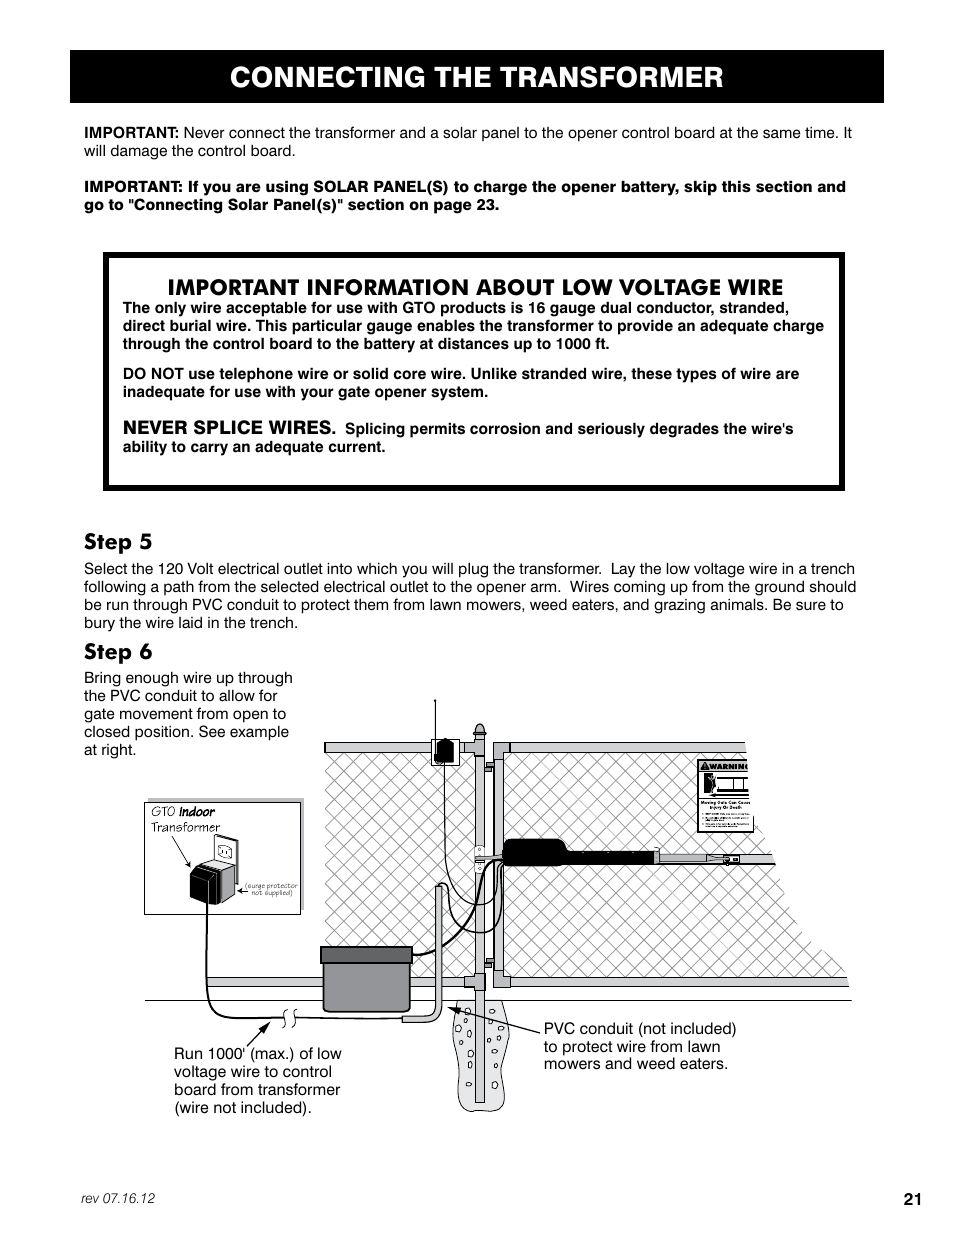 Connecting the transformer, Step 5, Step 6   Mighty Mule FM350 User Manual    Page 25 / 44